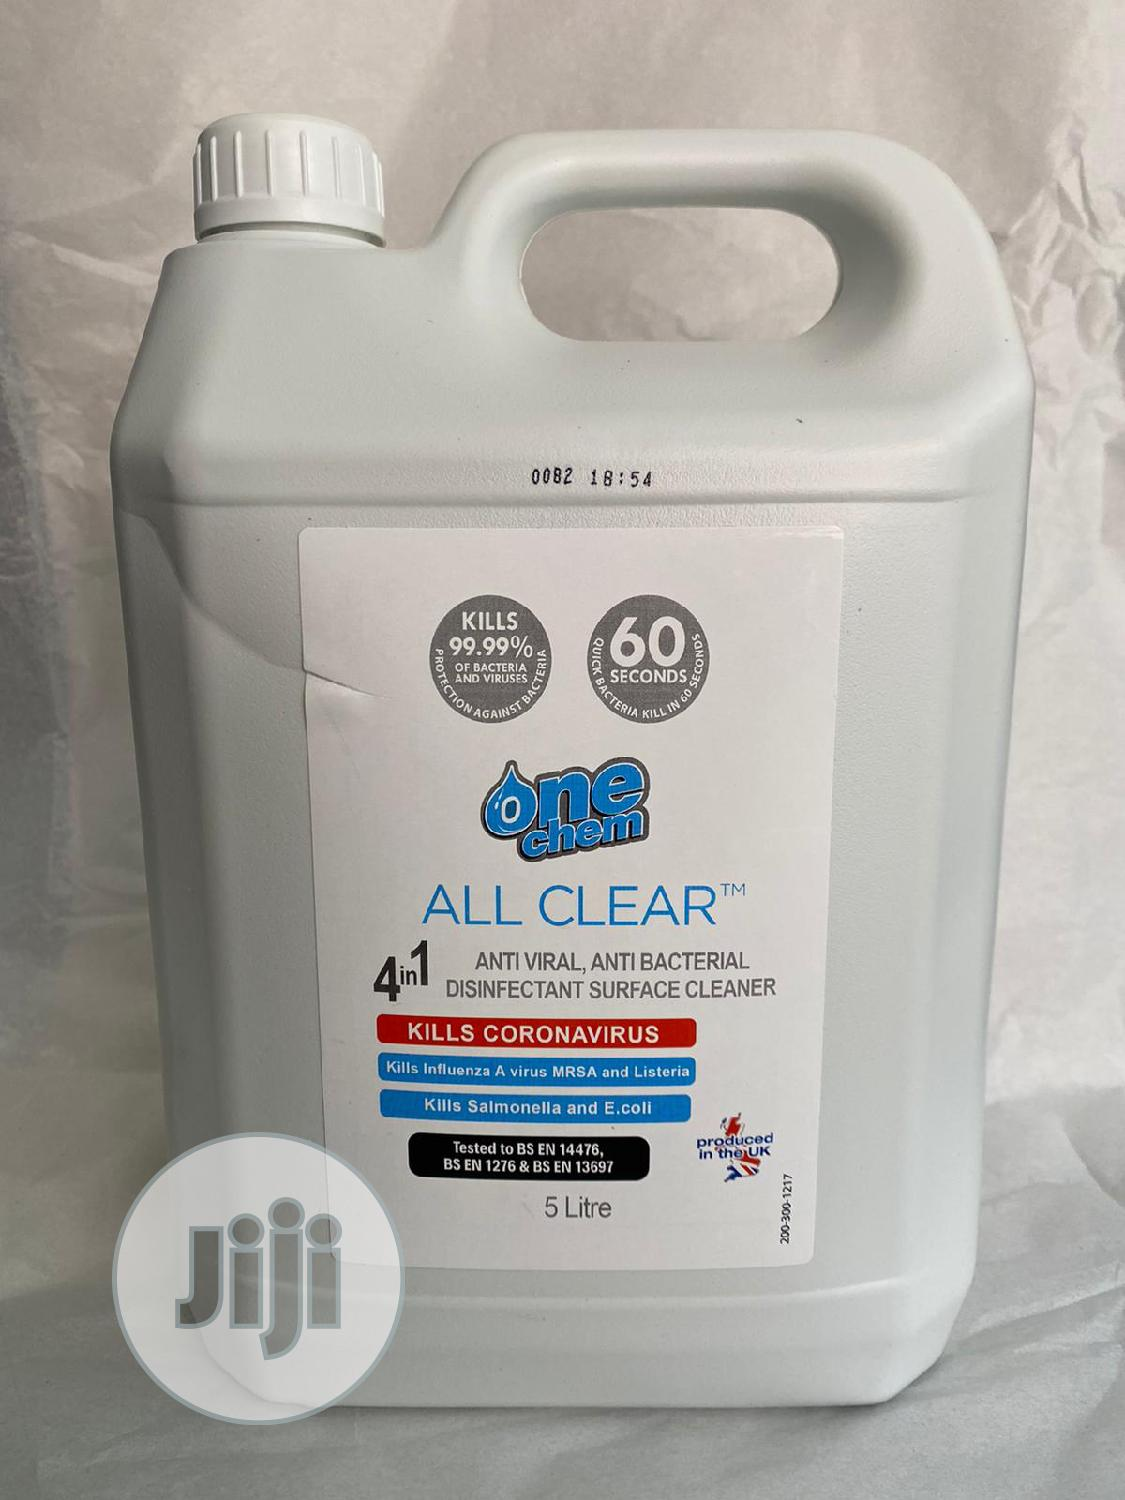 All Clear Anti-Viral Disinfectant and Surface Sanitizer